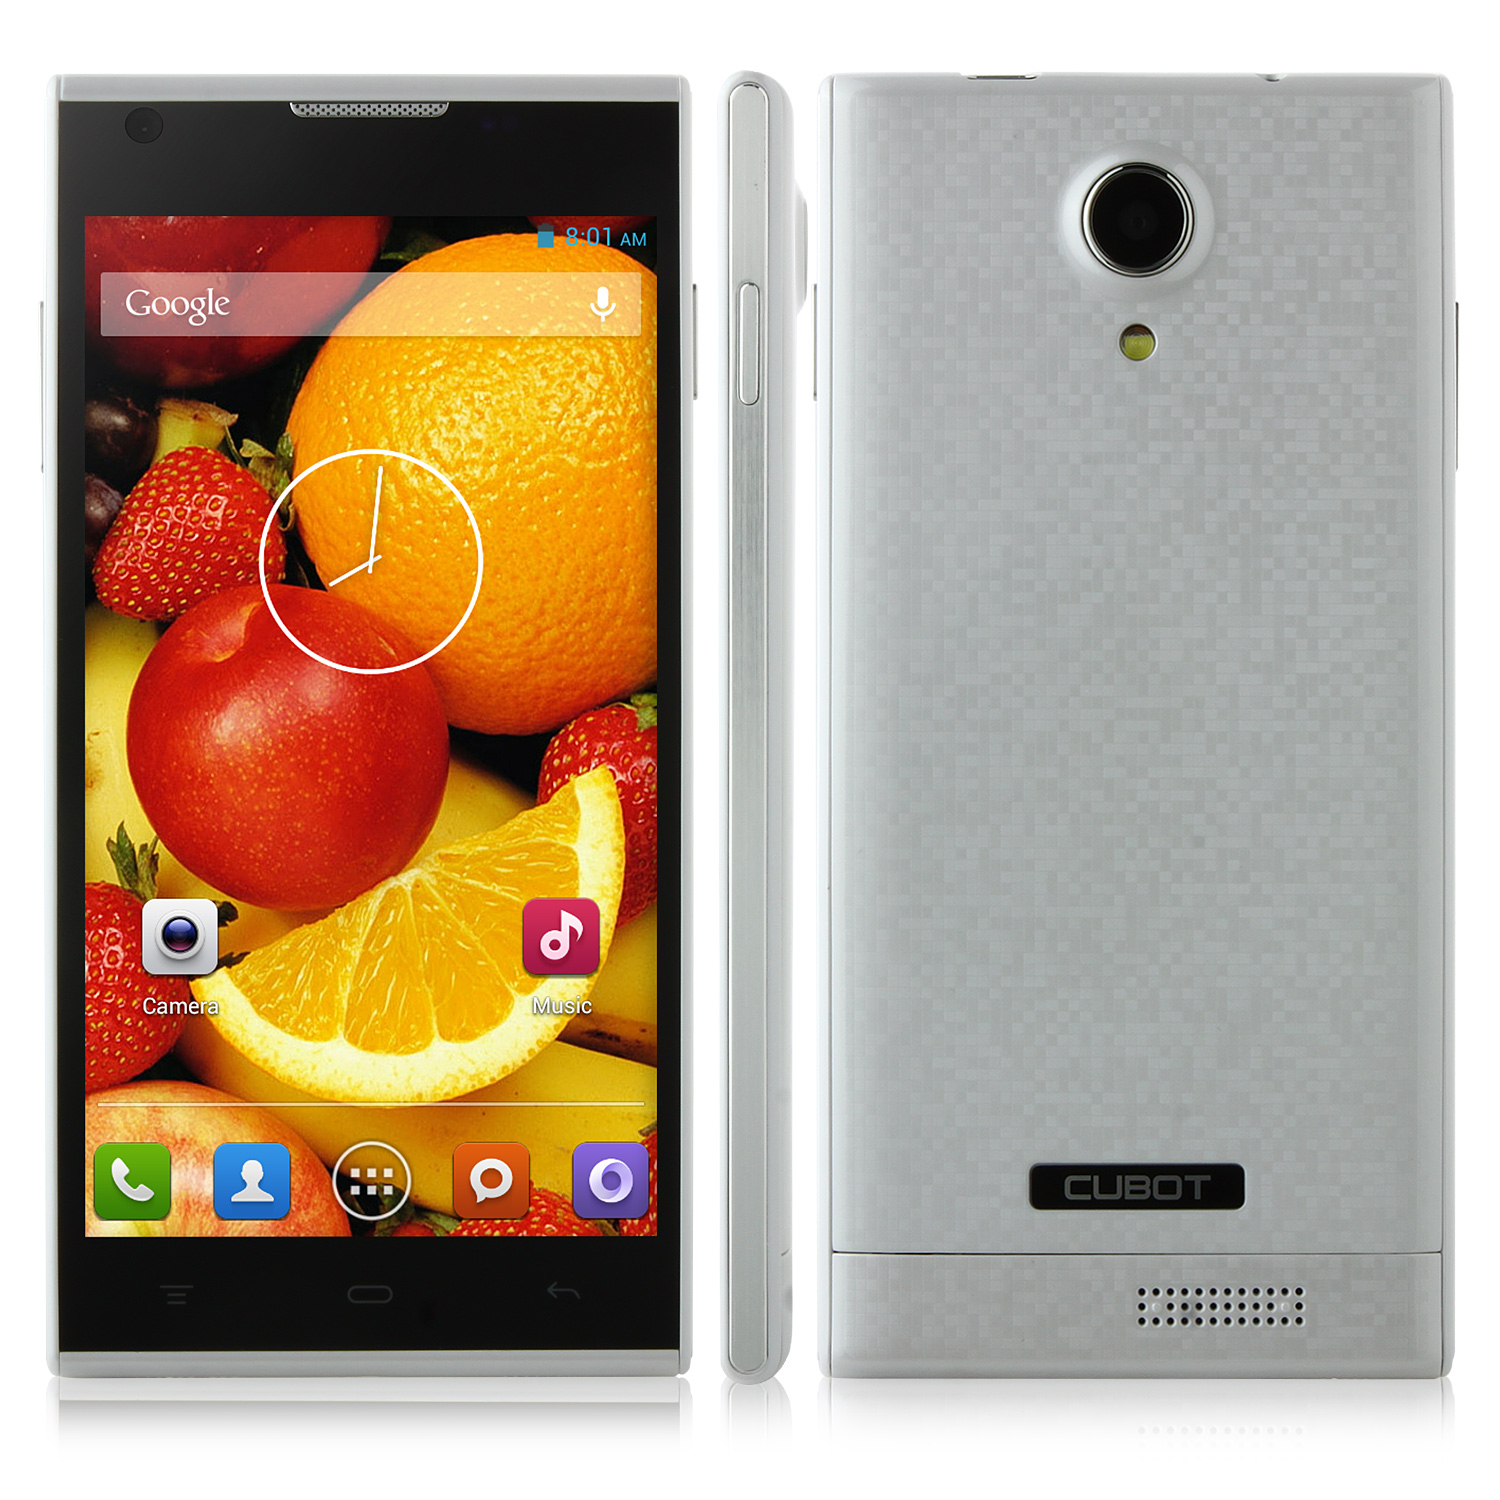 CUBOT P7 Smartphone MTK6582 5.0 Inch QHD IPS Screen Android 4.2 - White